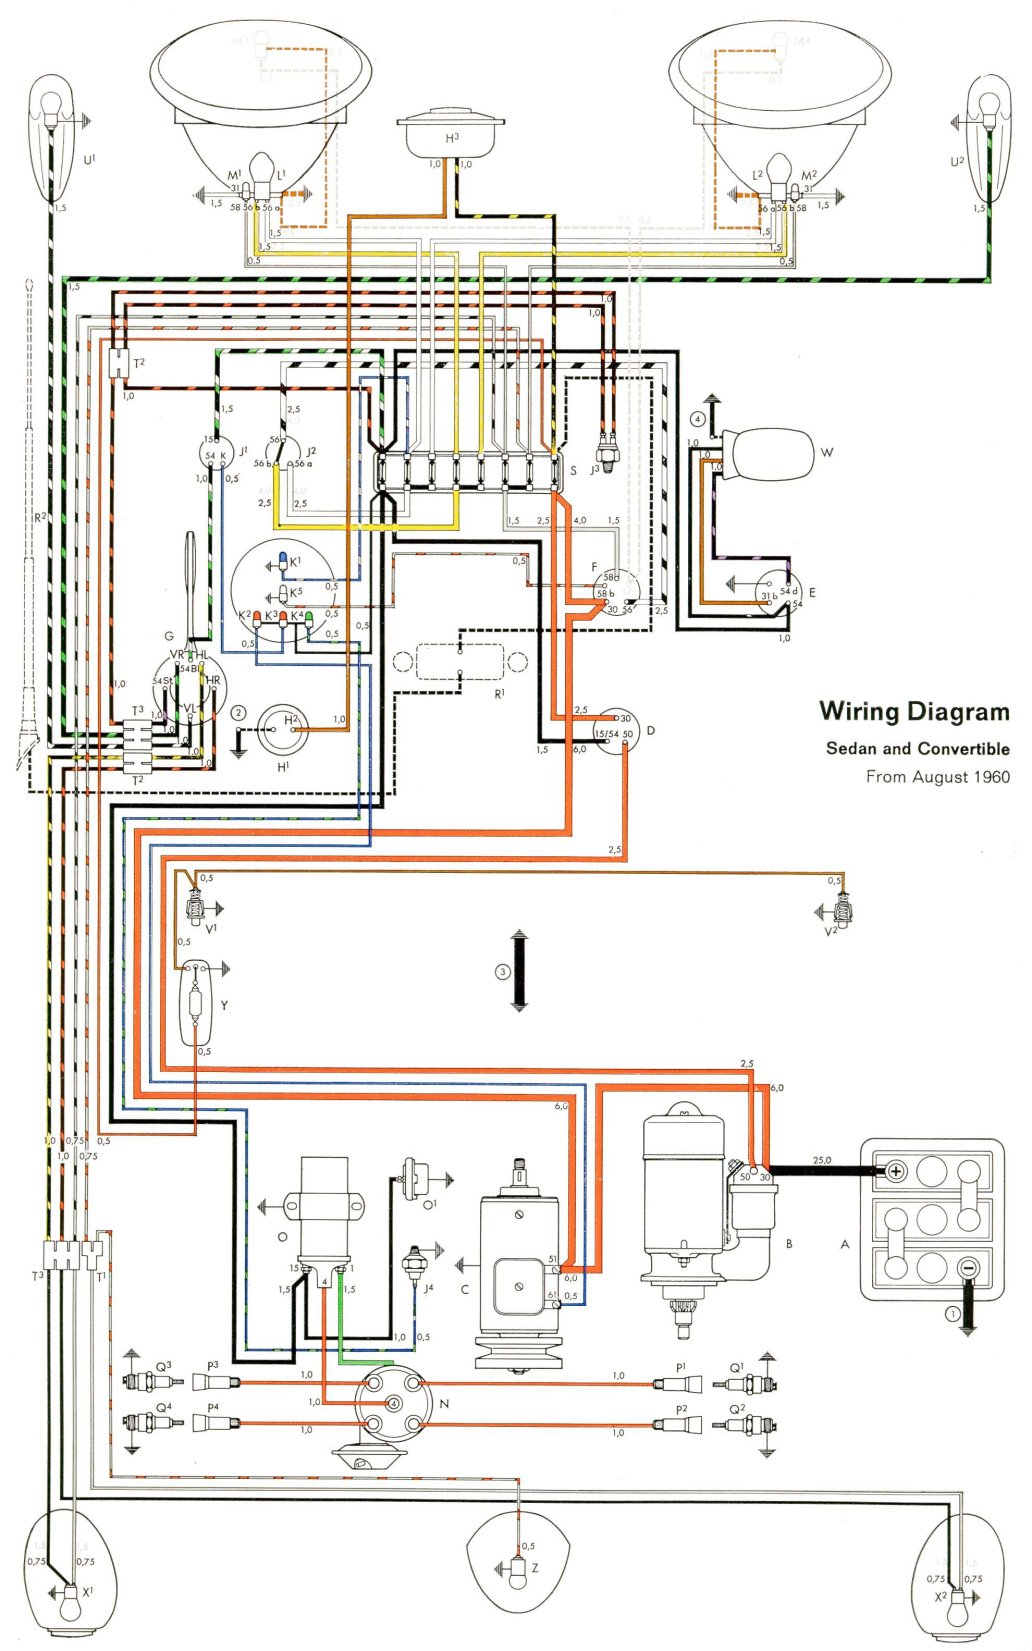 bug_61 1961 beetle wiring diagram thegoldenbug com vw bug wiring diagram at n-0.co